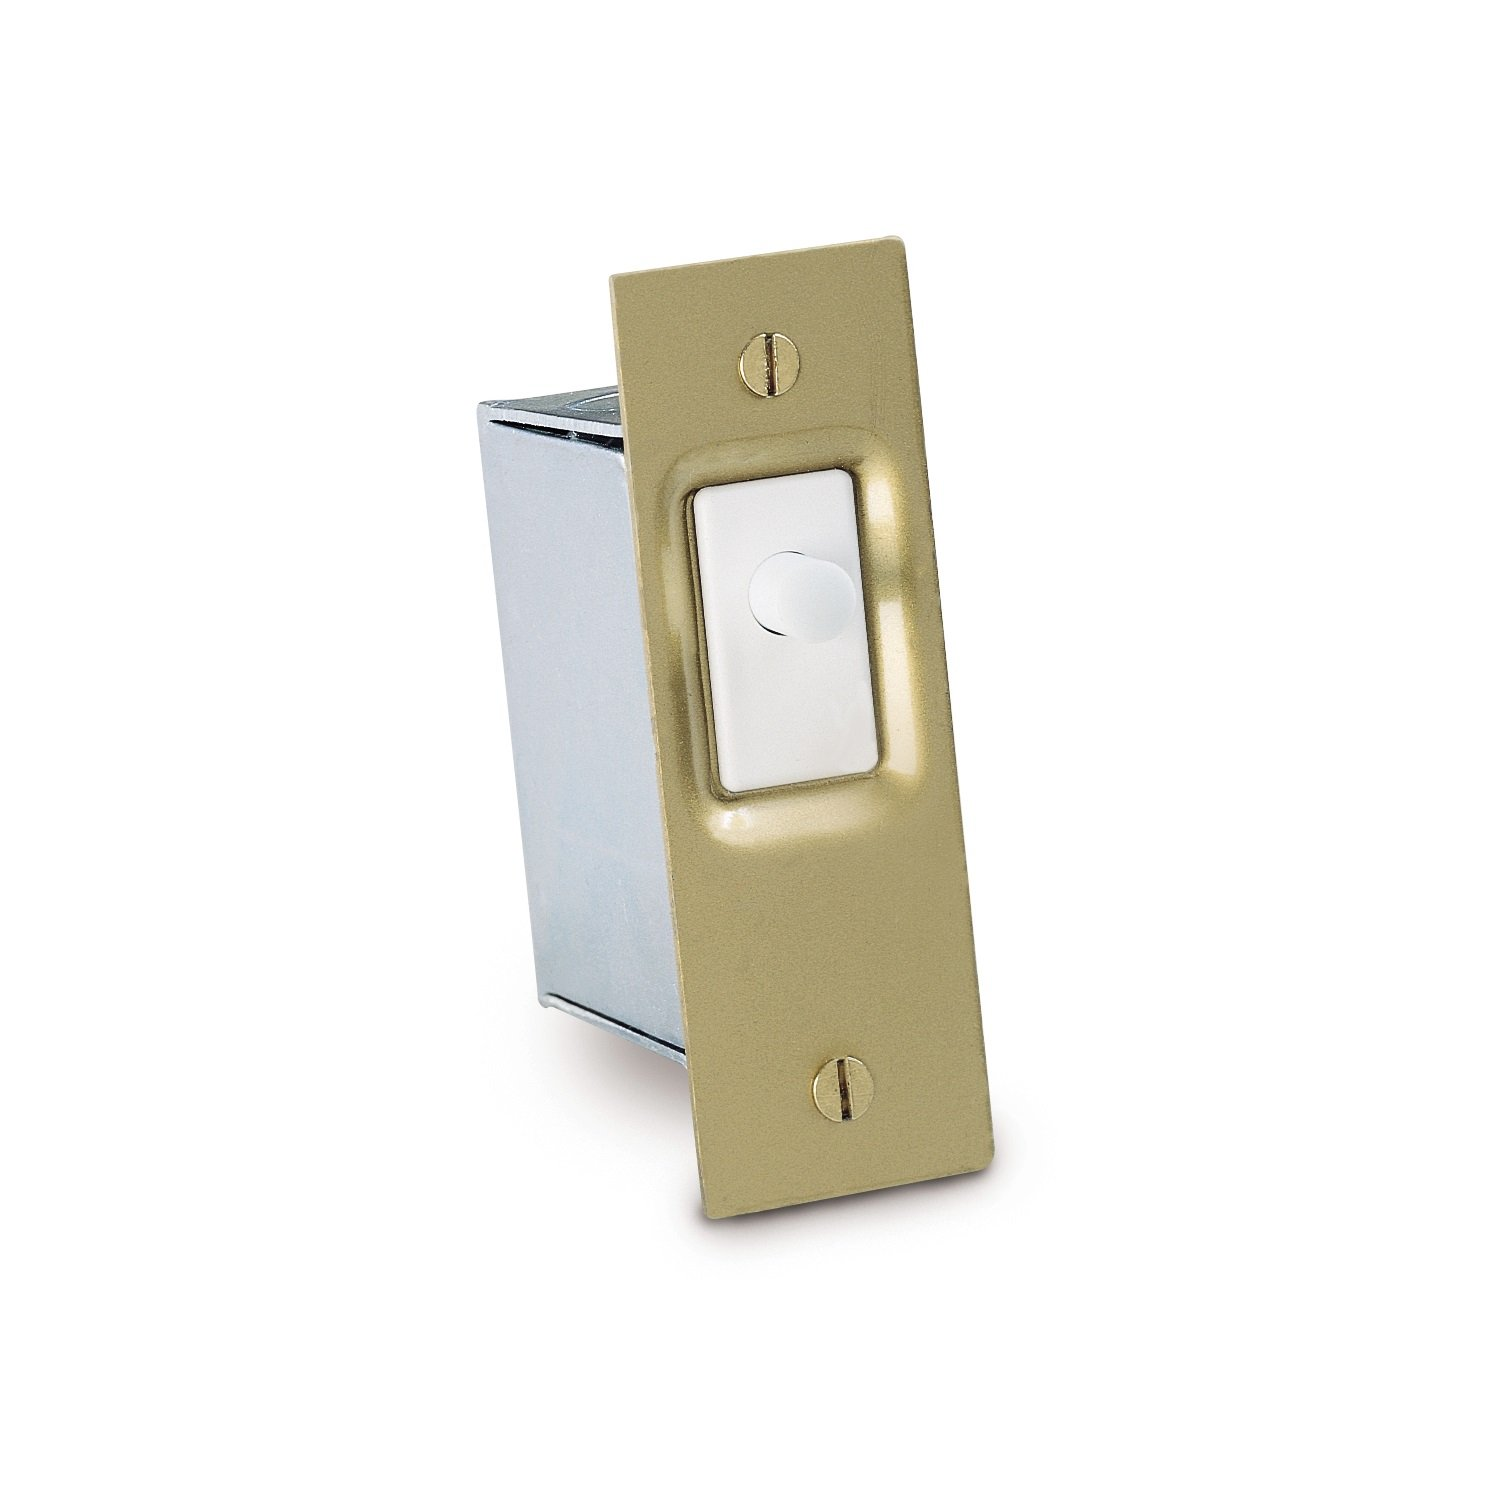 Gardner Bender GSW-SK Electrical Door Switch, SPST, Normally ON-Mom, 16 A/125V AC, White